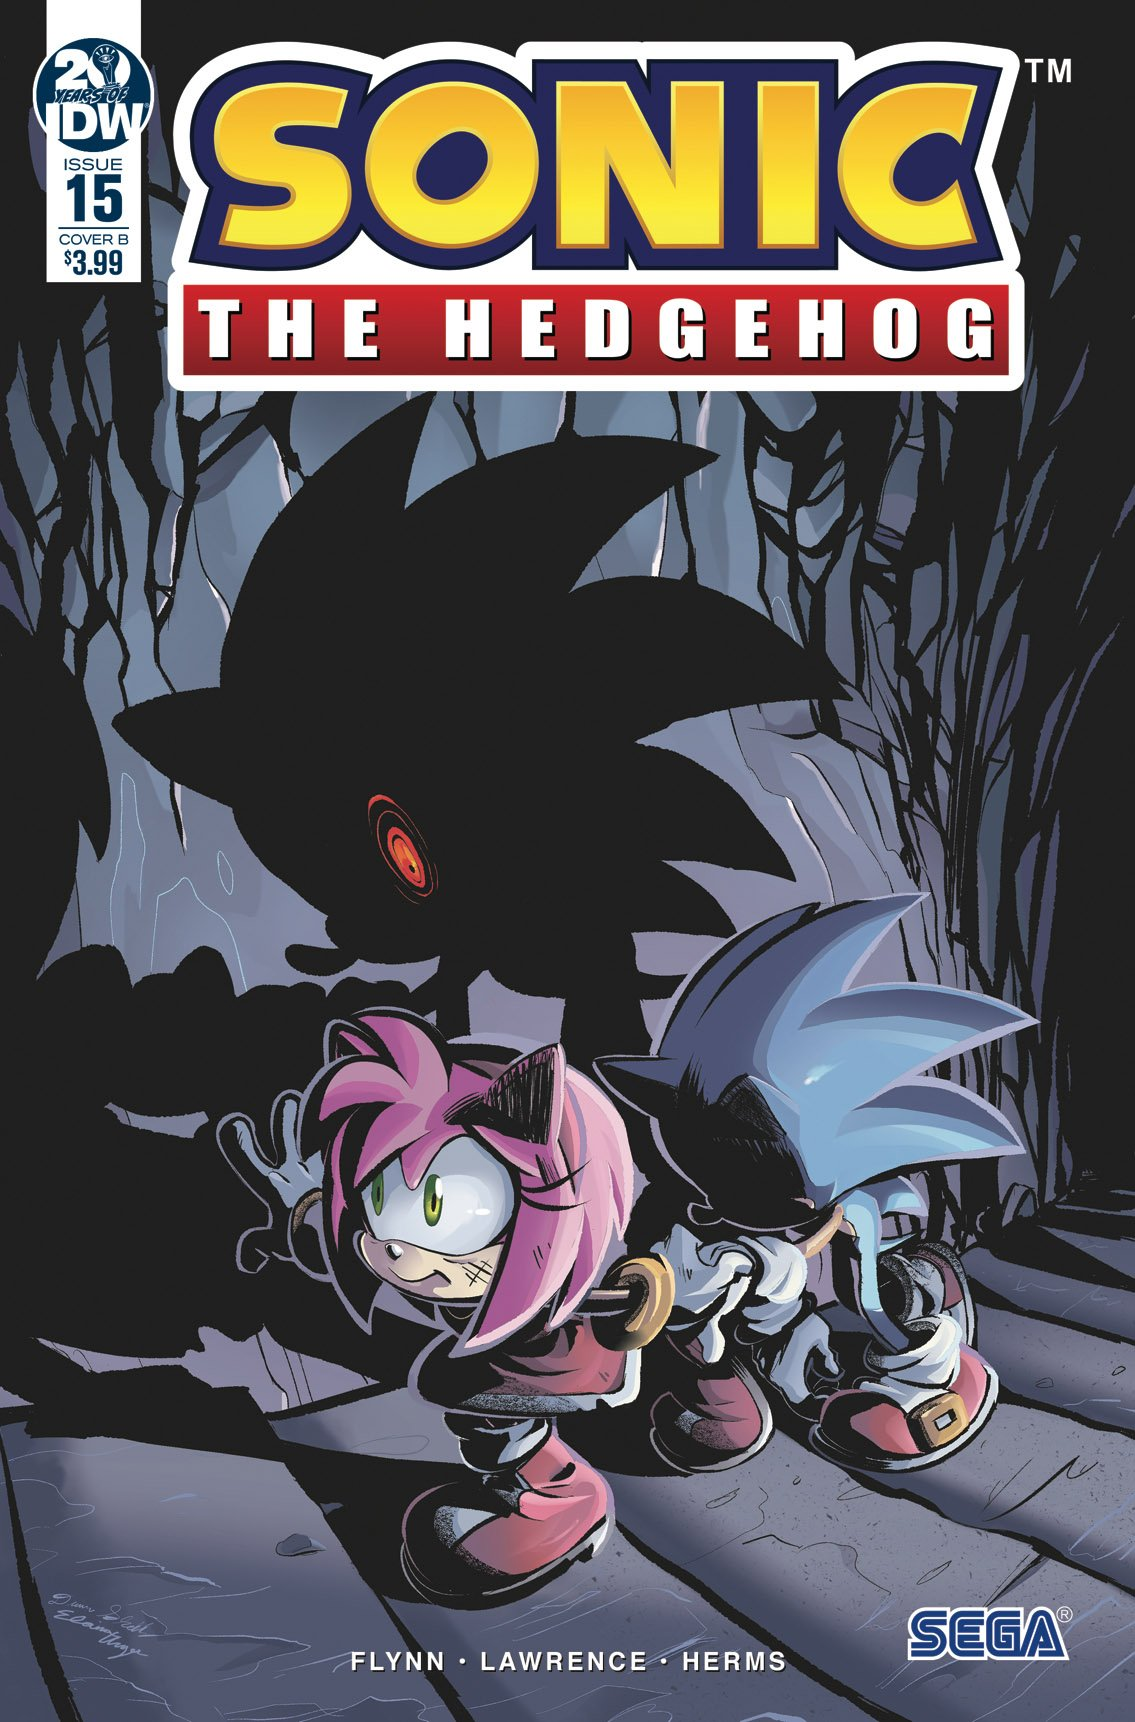 Sonic the Hedgehog 015 (March 2019) (cover b)